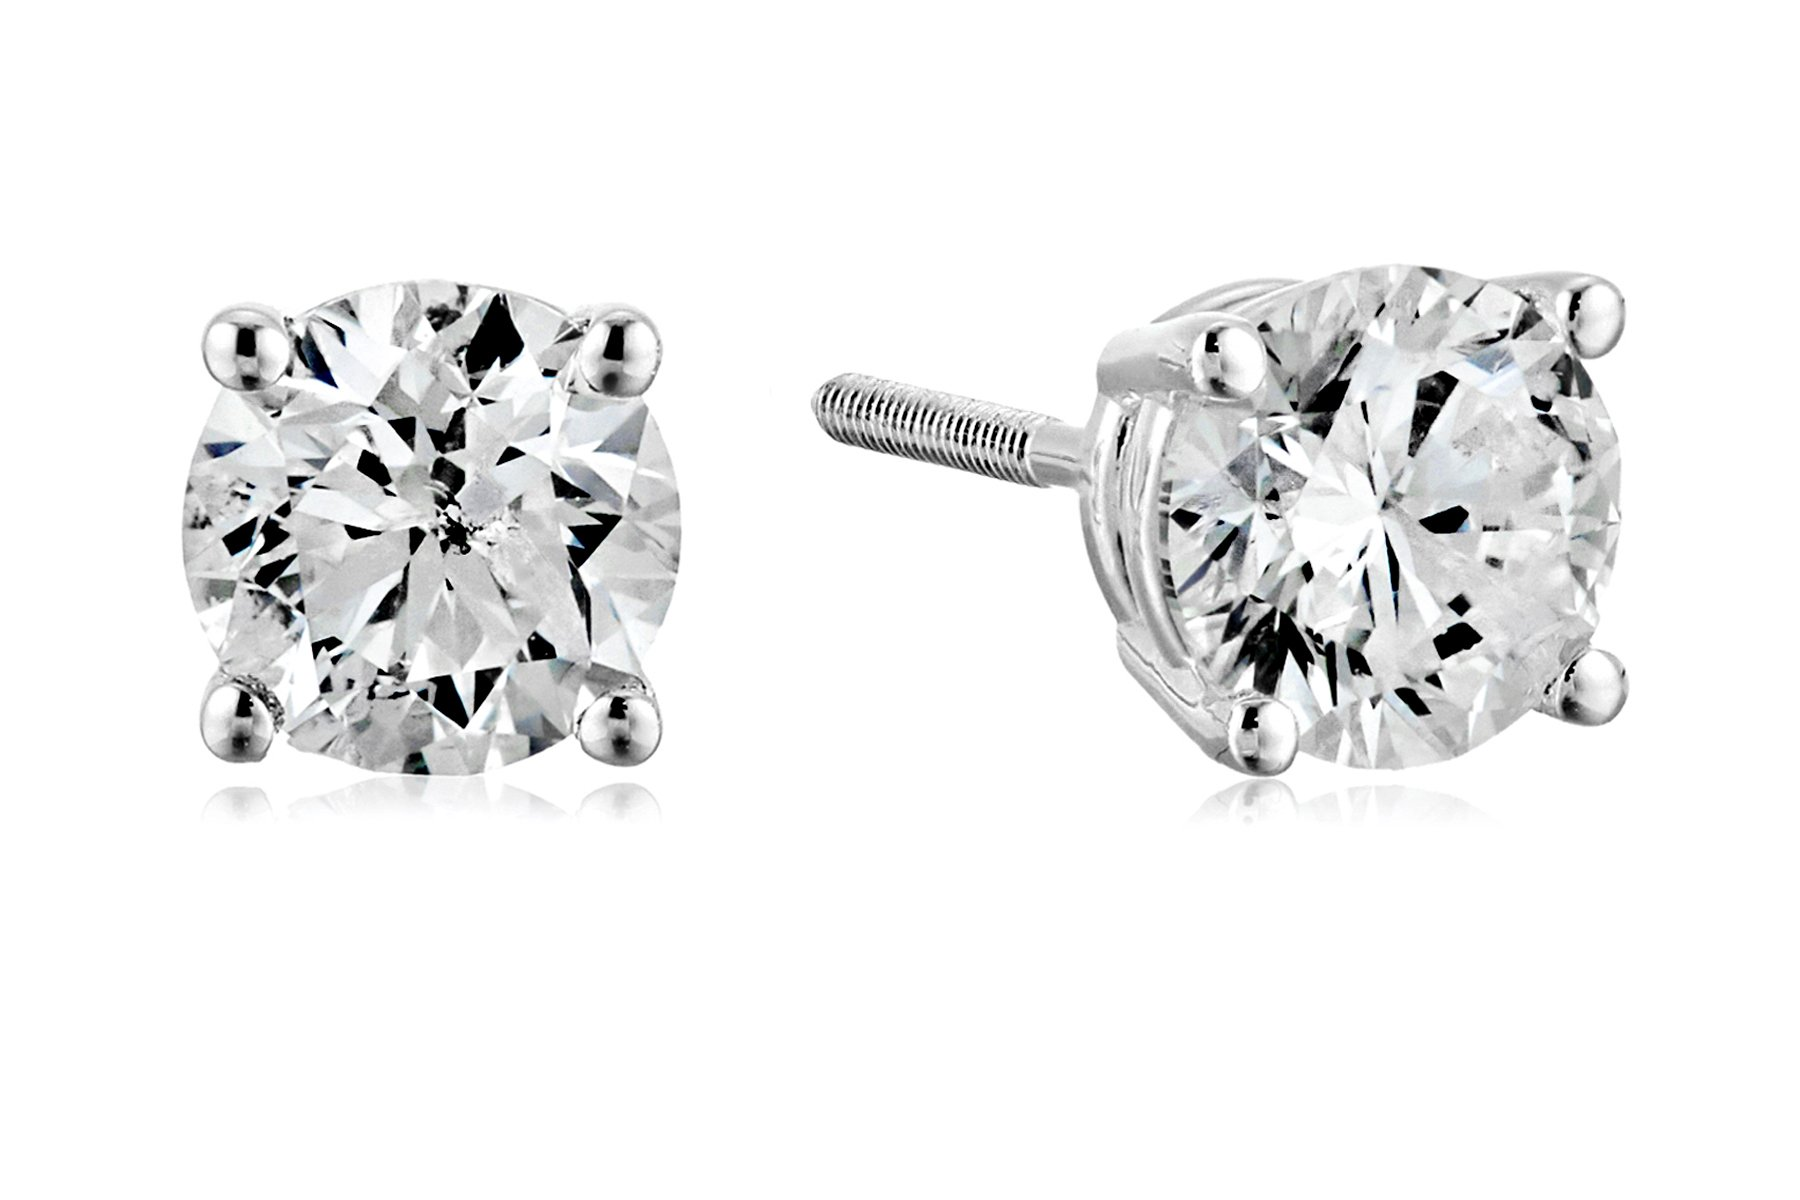 Certified 14k White Gold Diamond with Screw Back and Post Stud Earrings (1 1/2cttw, J-K Color, I1-I2 Clarity)